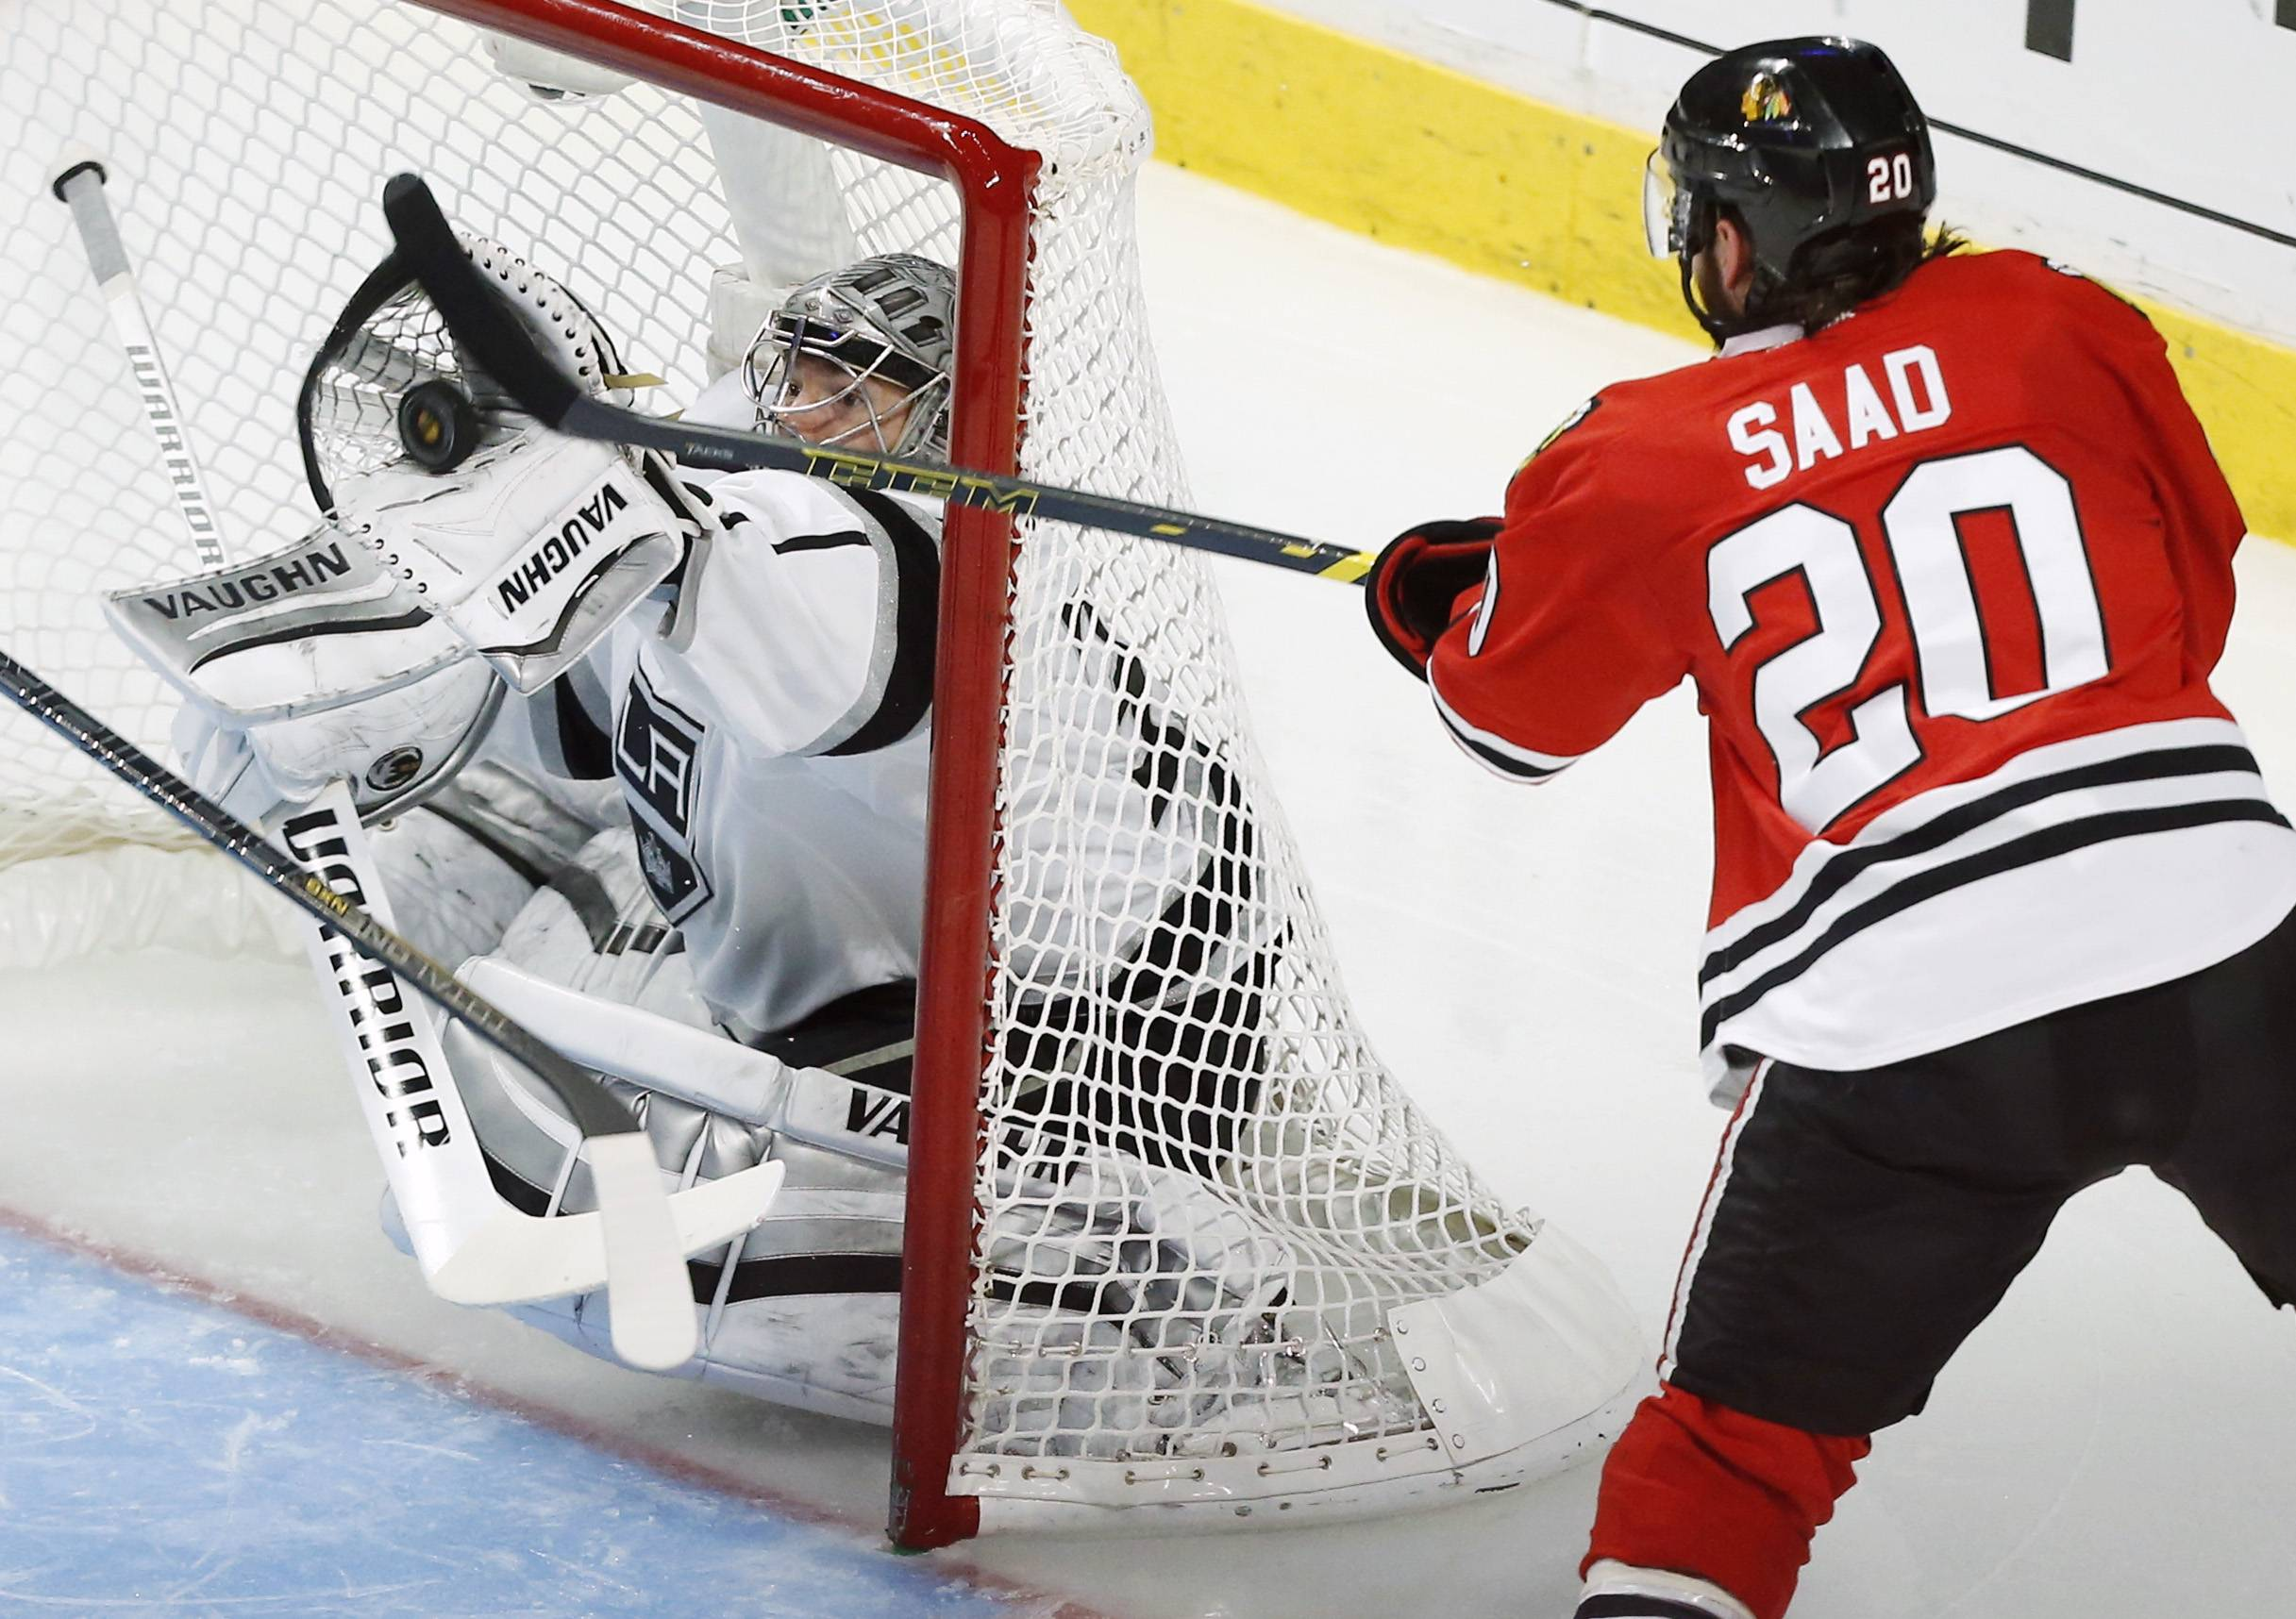 Los Angeles Kings goalie Jonathan Quick, left, saves a goal shot by Chicago Blackhawks left wing Brandon Saad (20) during the second period.